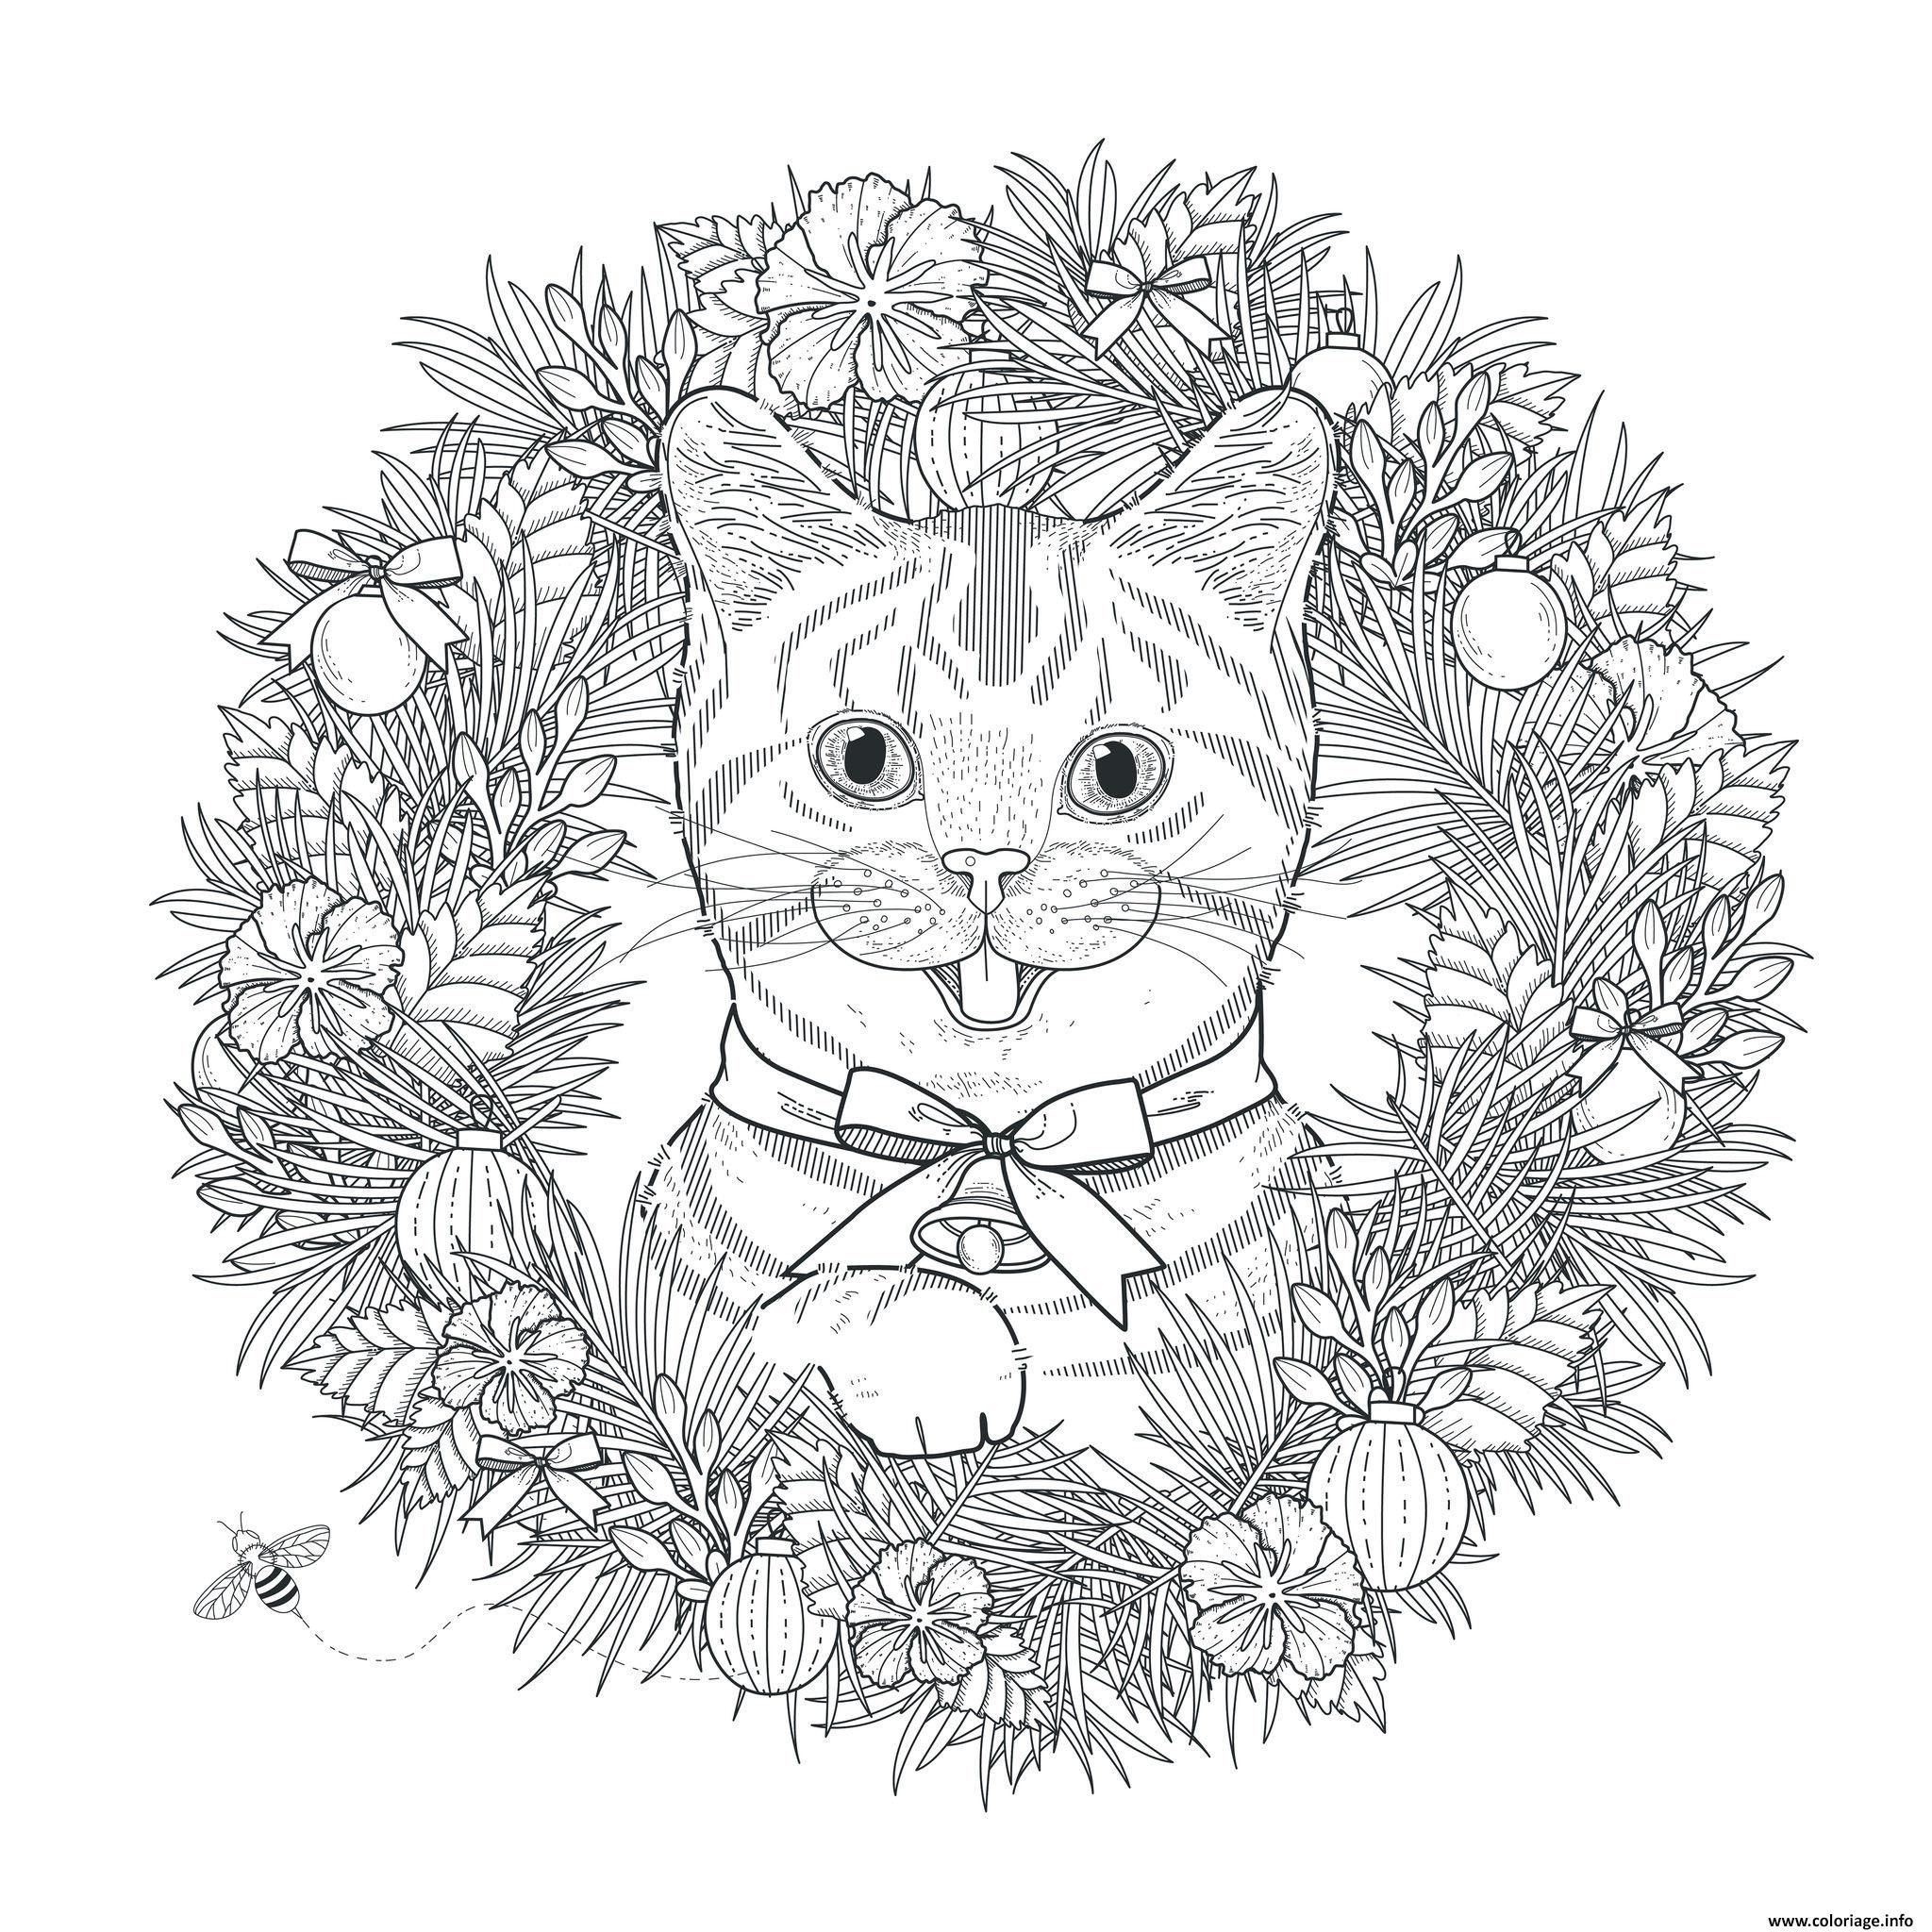 Coloriage Chat Noel.Coloriage Mandala Noel Chat Adulte Dessin A Imprimer Art Cat